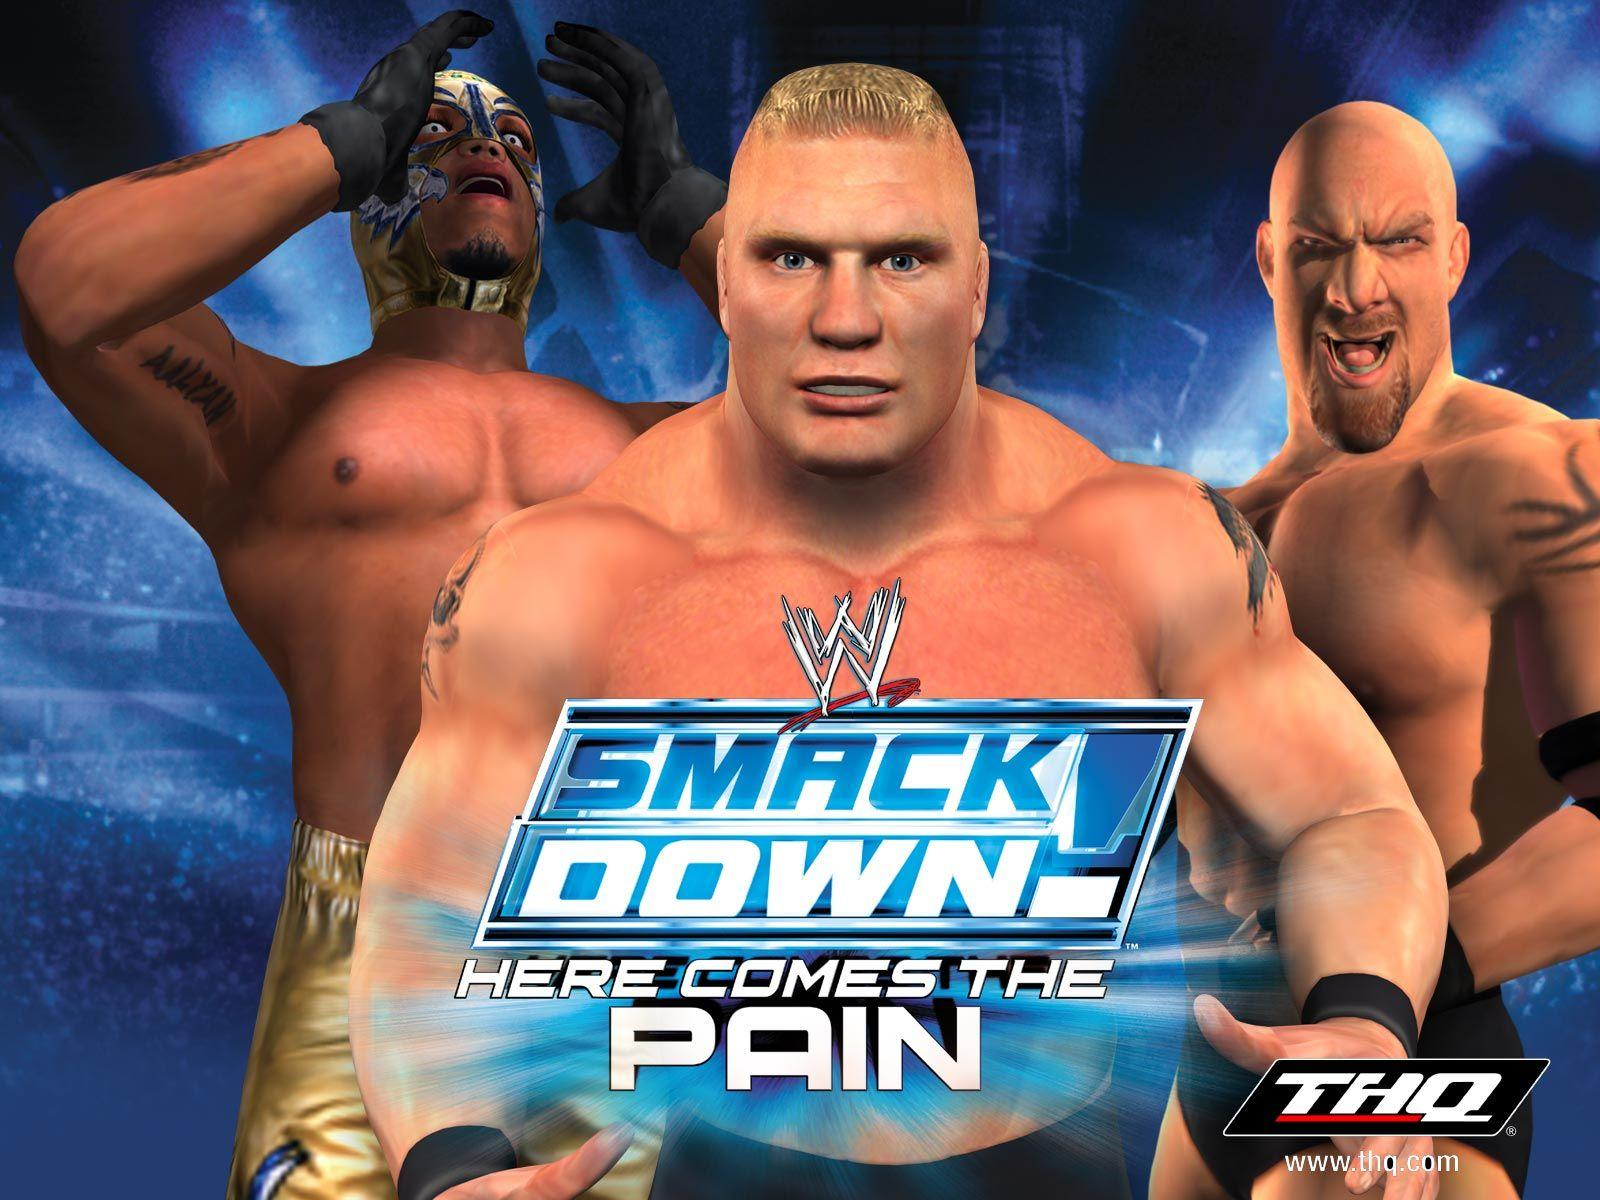 Wwe smackdown vs raw free download fever of games.